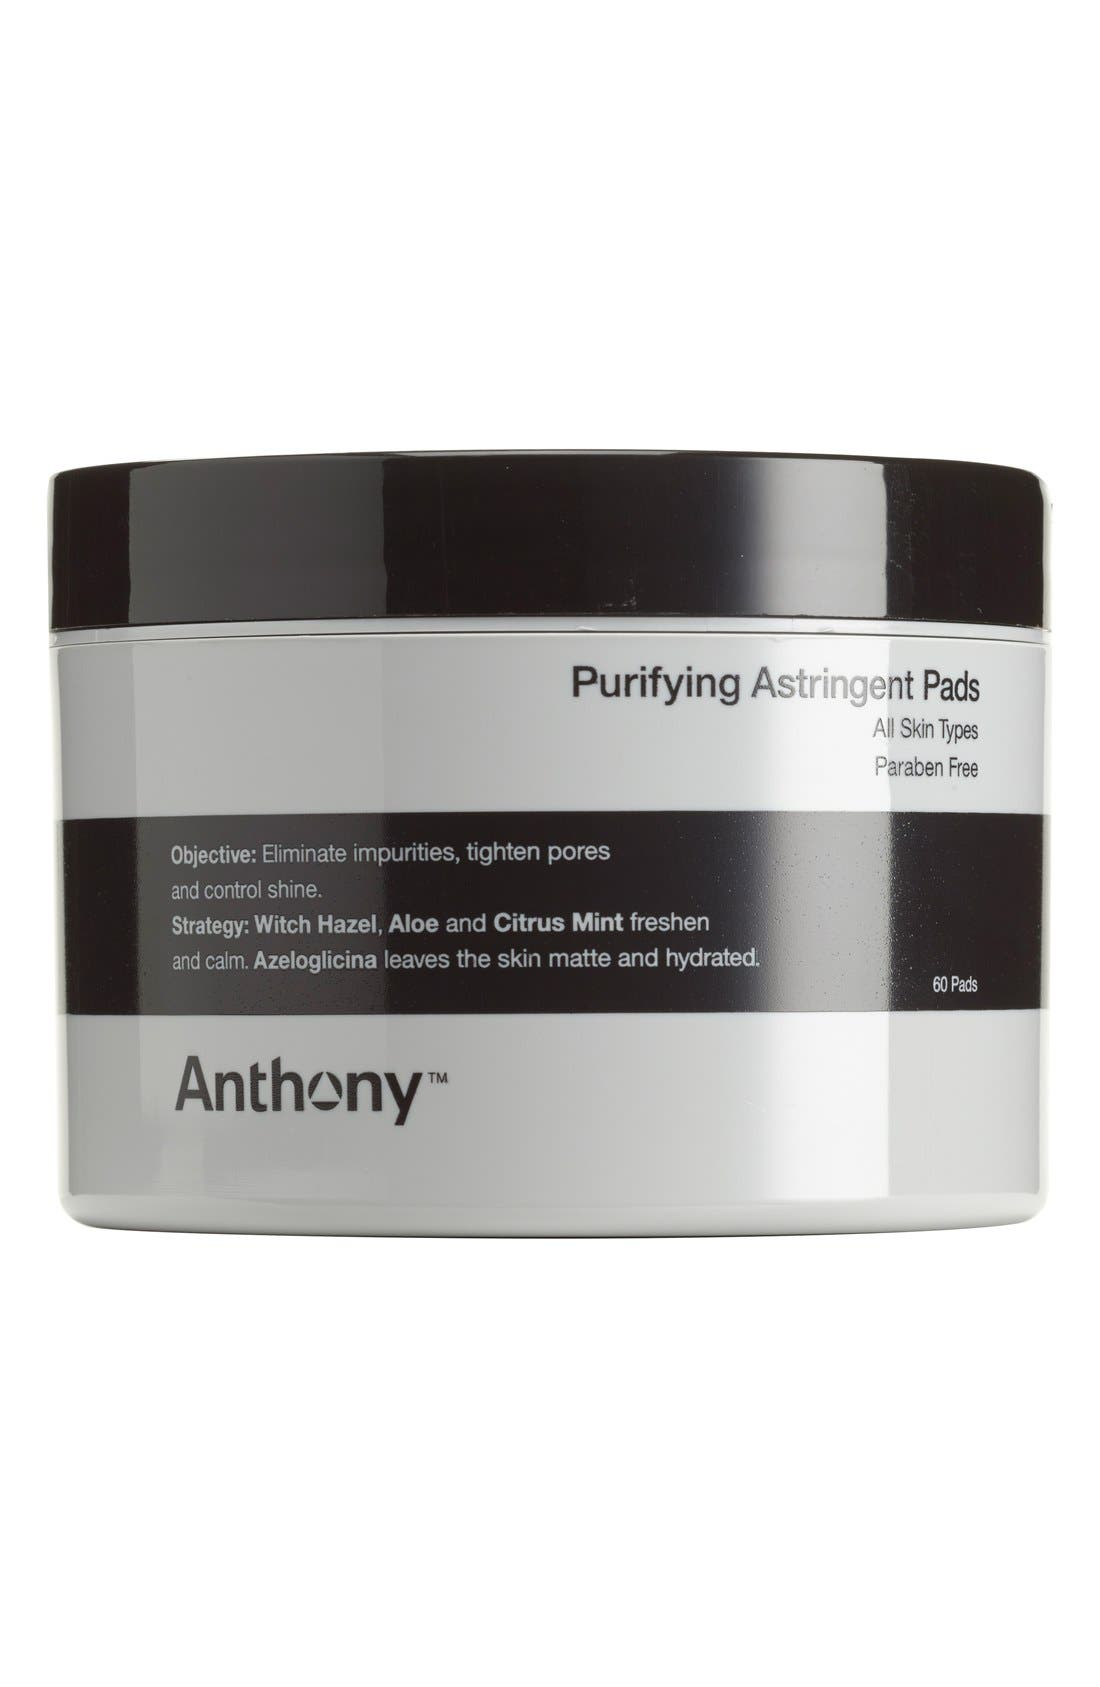 Anthony™ Purifying Astringent Pads